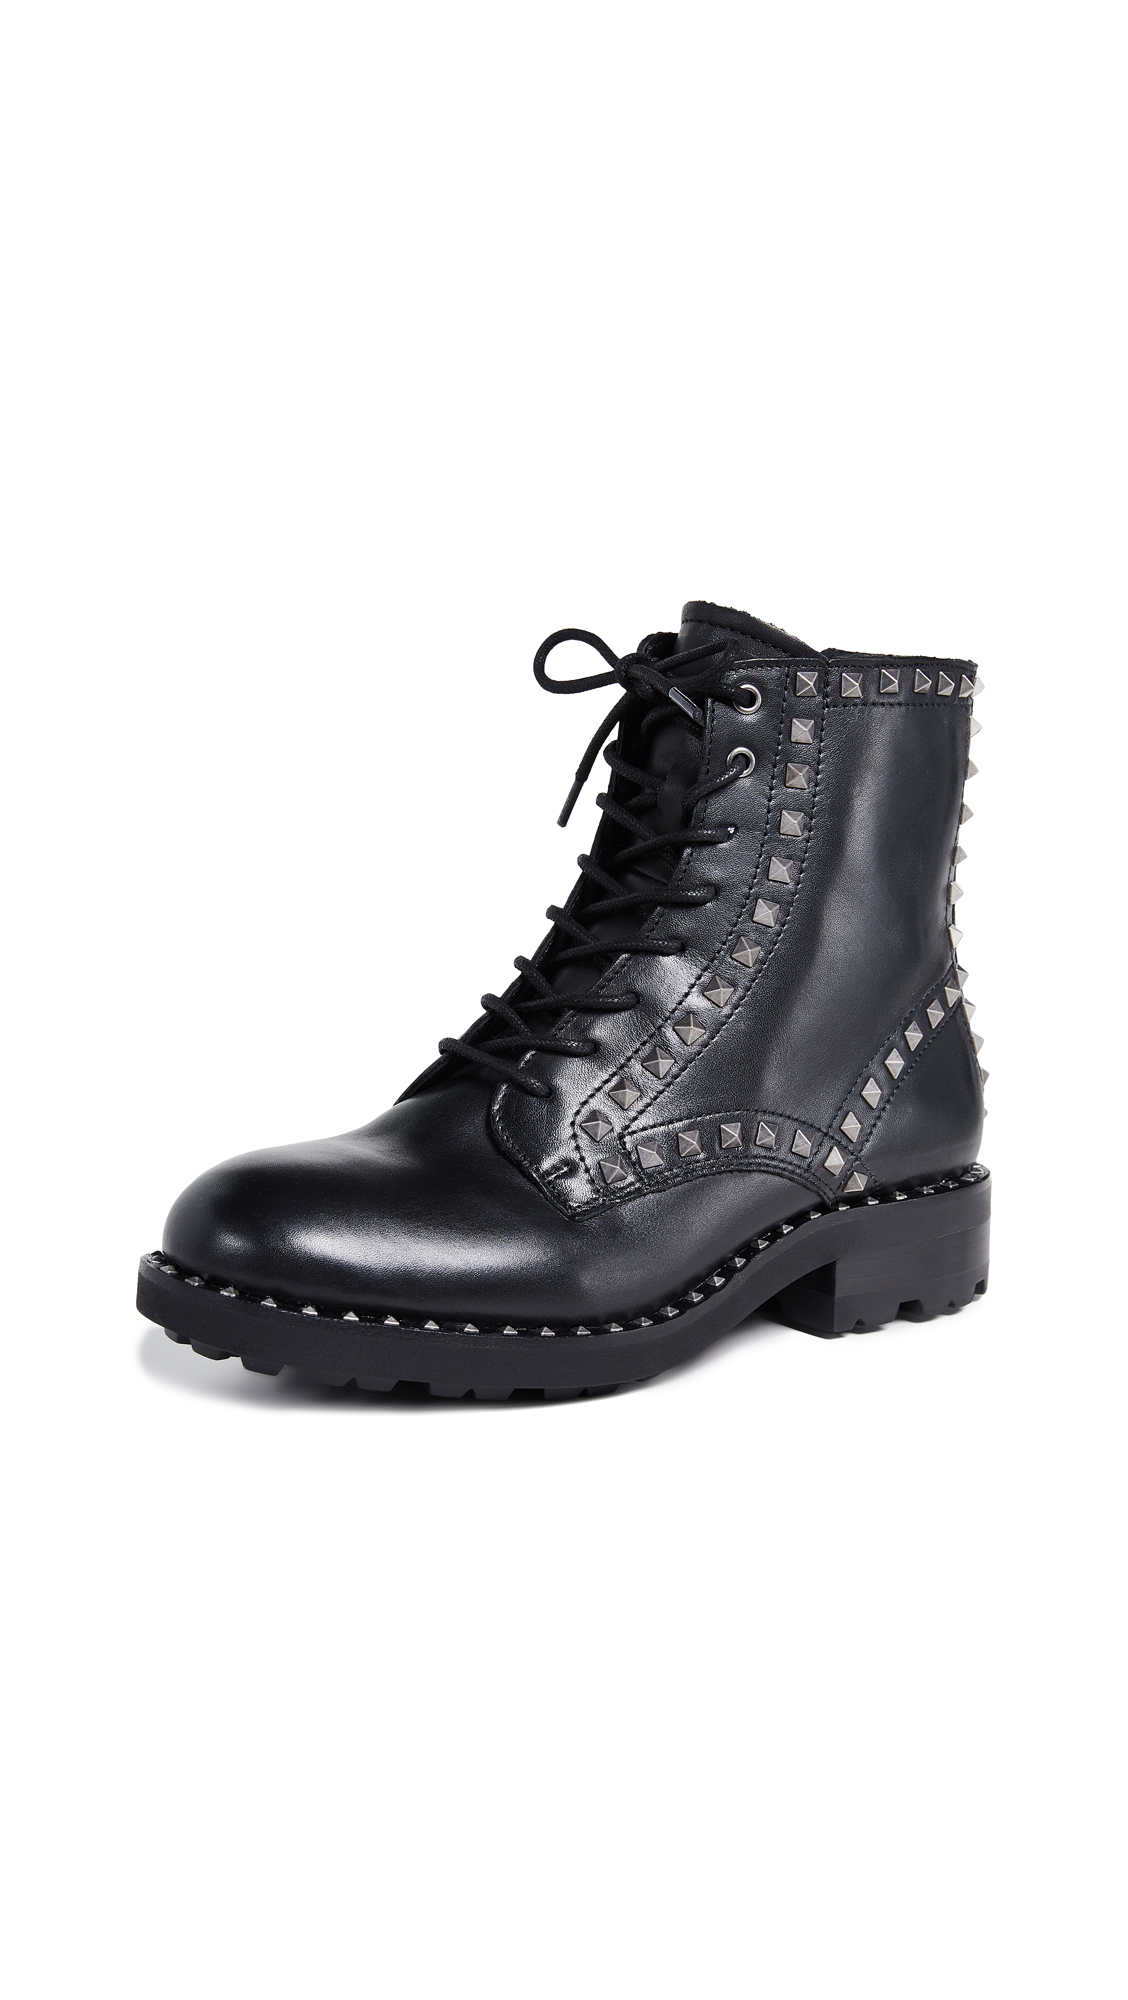 Ash Wolf Boots - Black/Silver